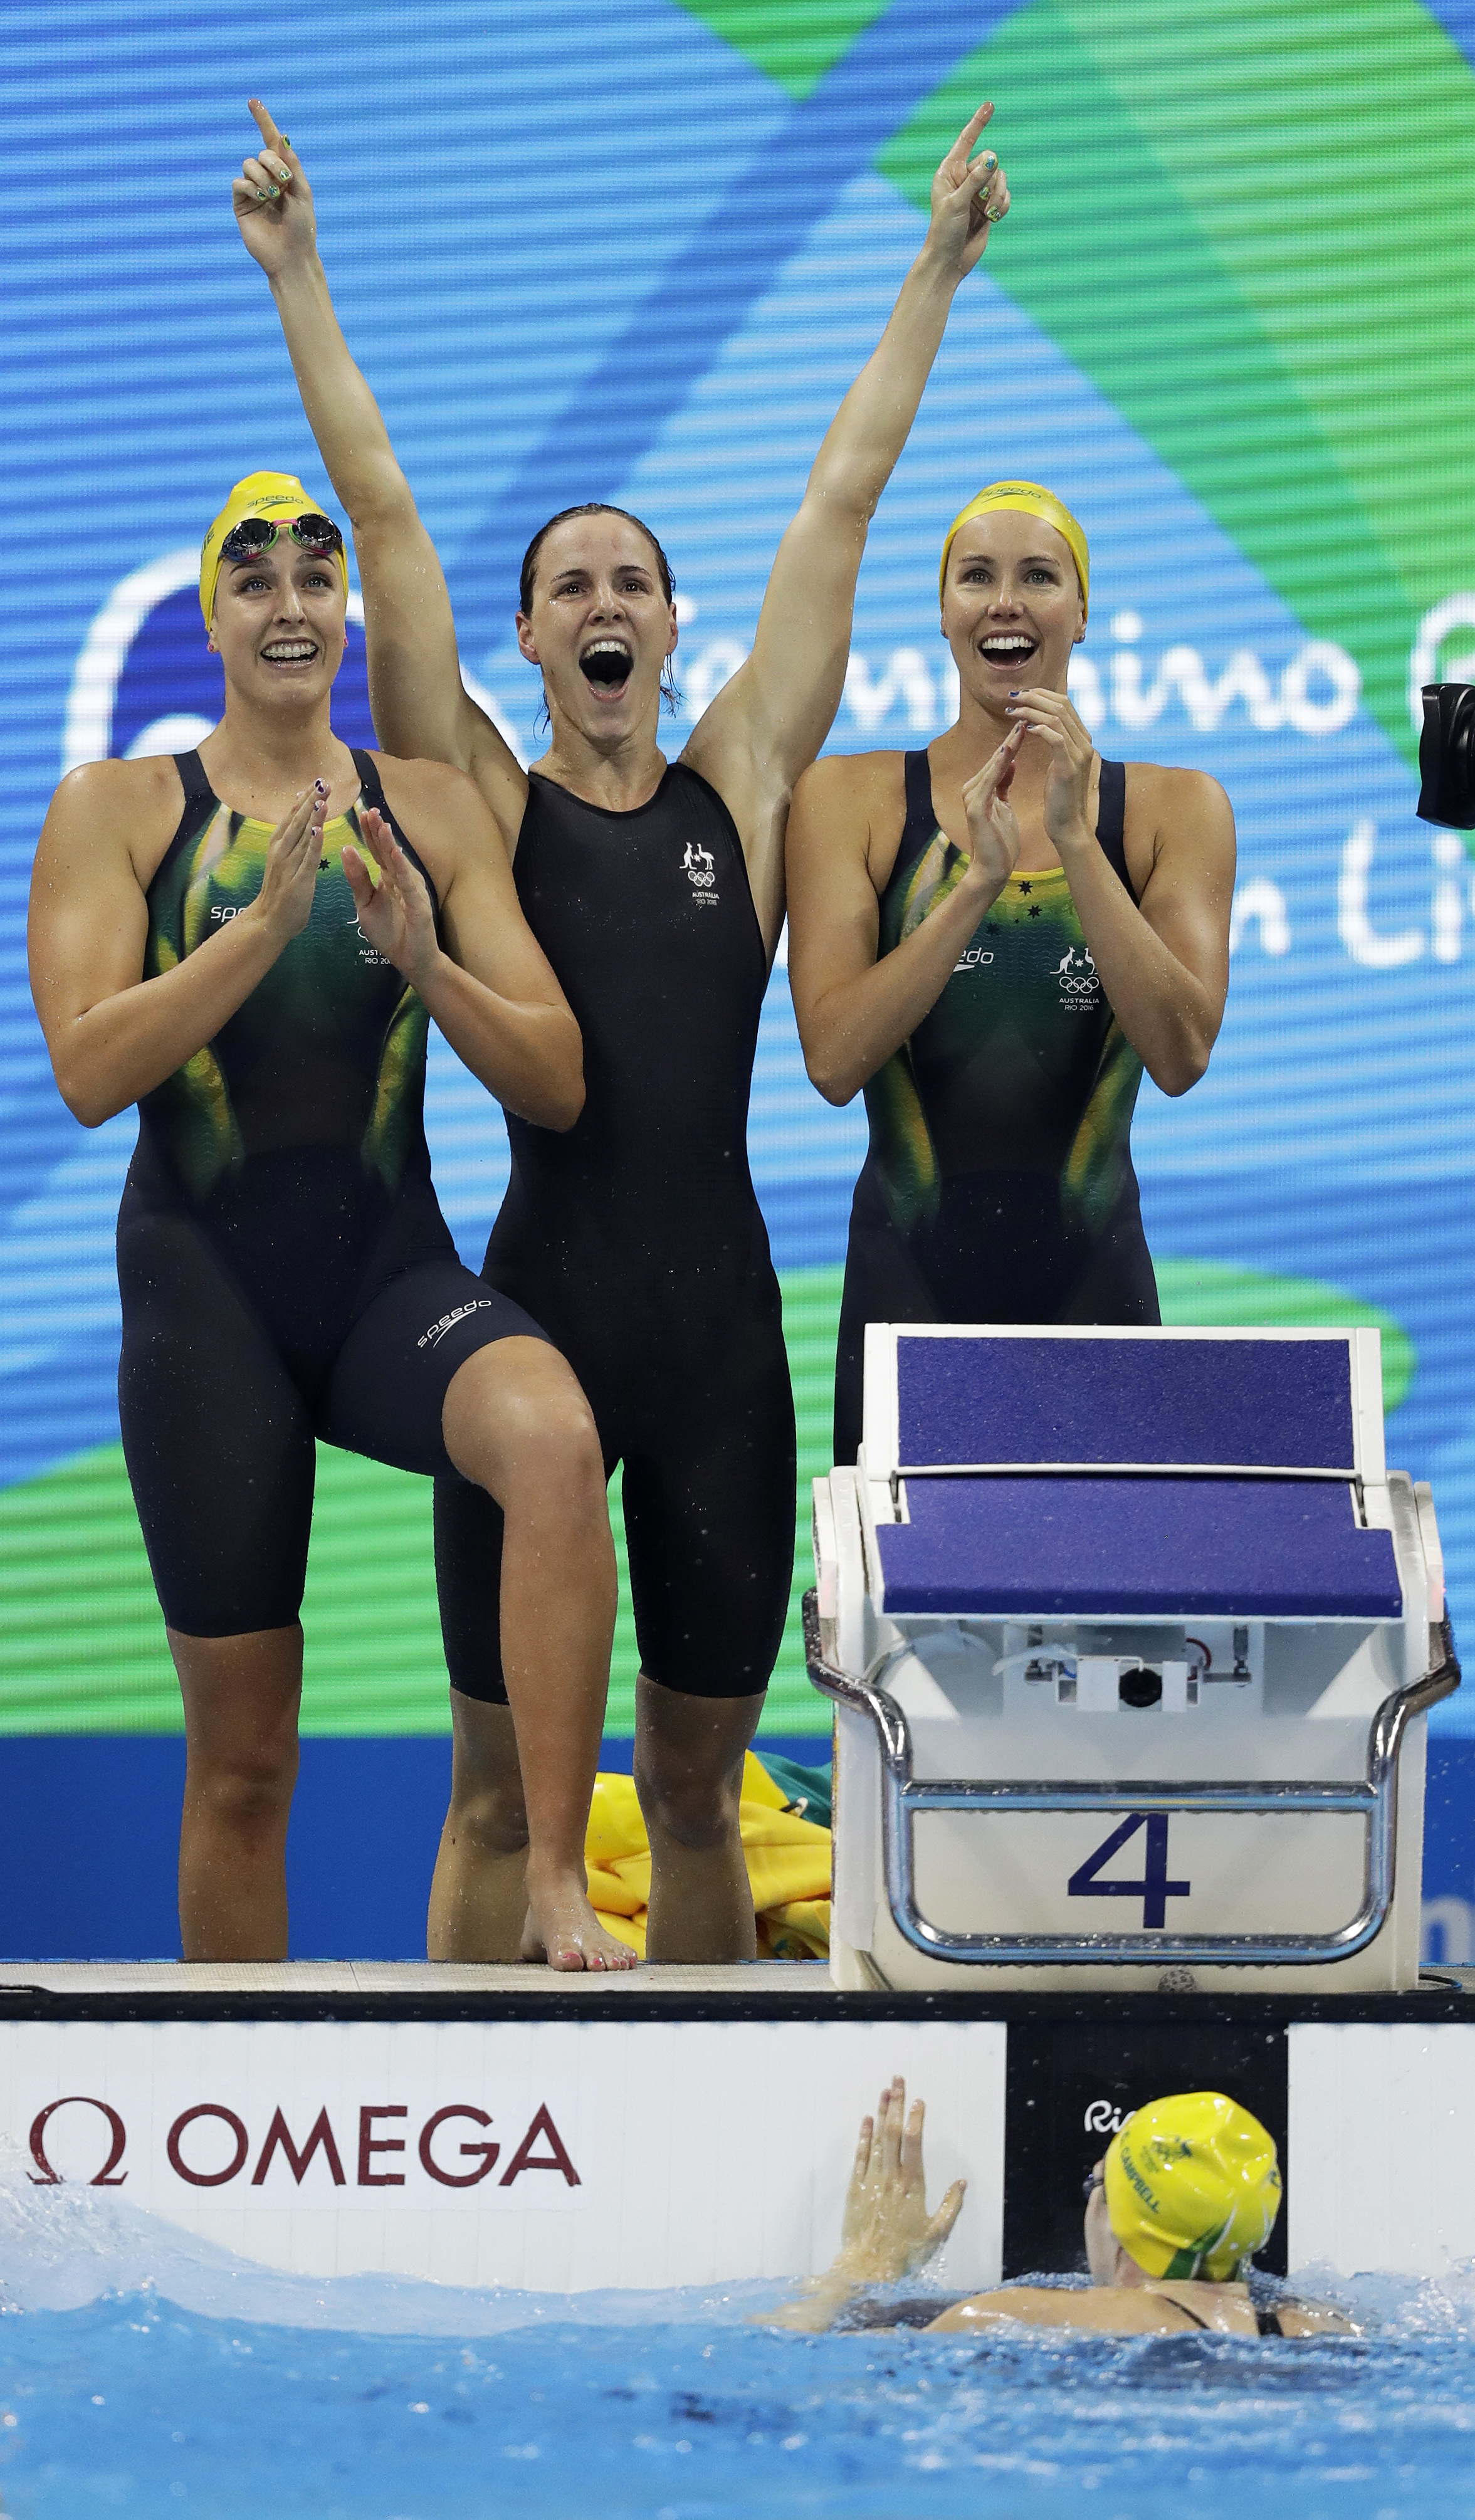 Australia's Emma McKeon, Brittany Elmslie and Bronte Campbell celebrate as Cate Campbell, bottom, finishes the women's 4x100-meter freestyle final setting a new world record during the swimming competitions at the 2016 Summer Olympics, Saturday, Aug. 6, 2